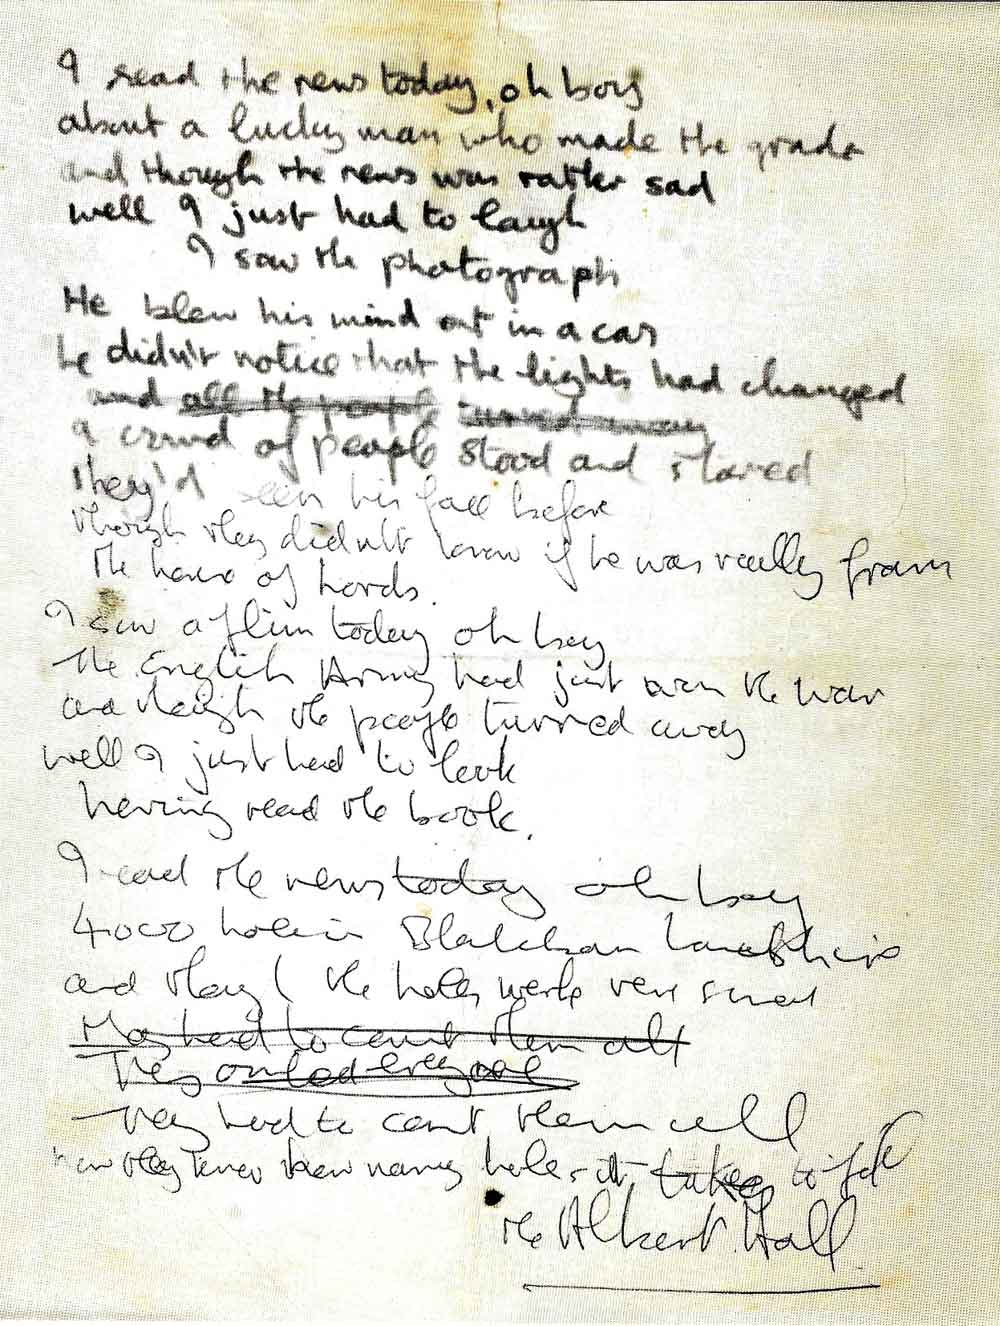 John Lennon's Handwritten Lyrics for The Beatles A Day in the Life